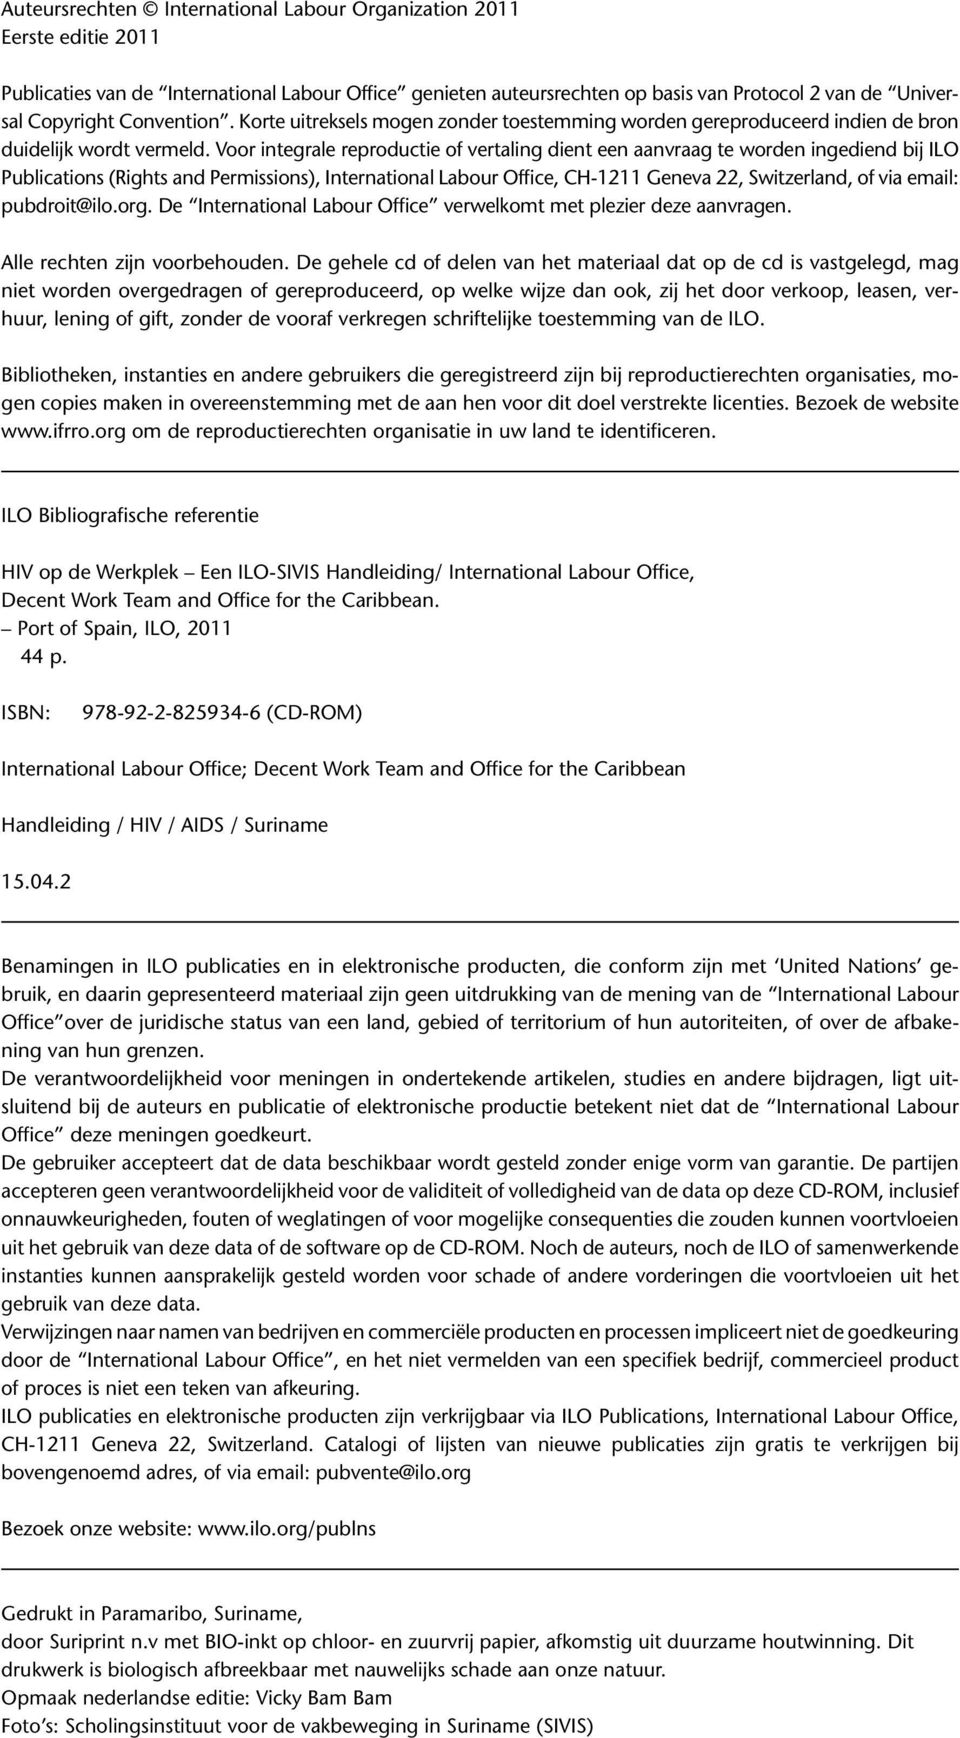 Voor integrale reproductie of vertaling dient een aanvraag te worden ingediend bij ILO Publications (Rights and Permissions), International Labour Office, CH-1211 Geneva 22, Switzerland, of via